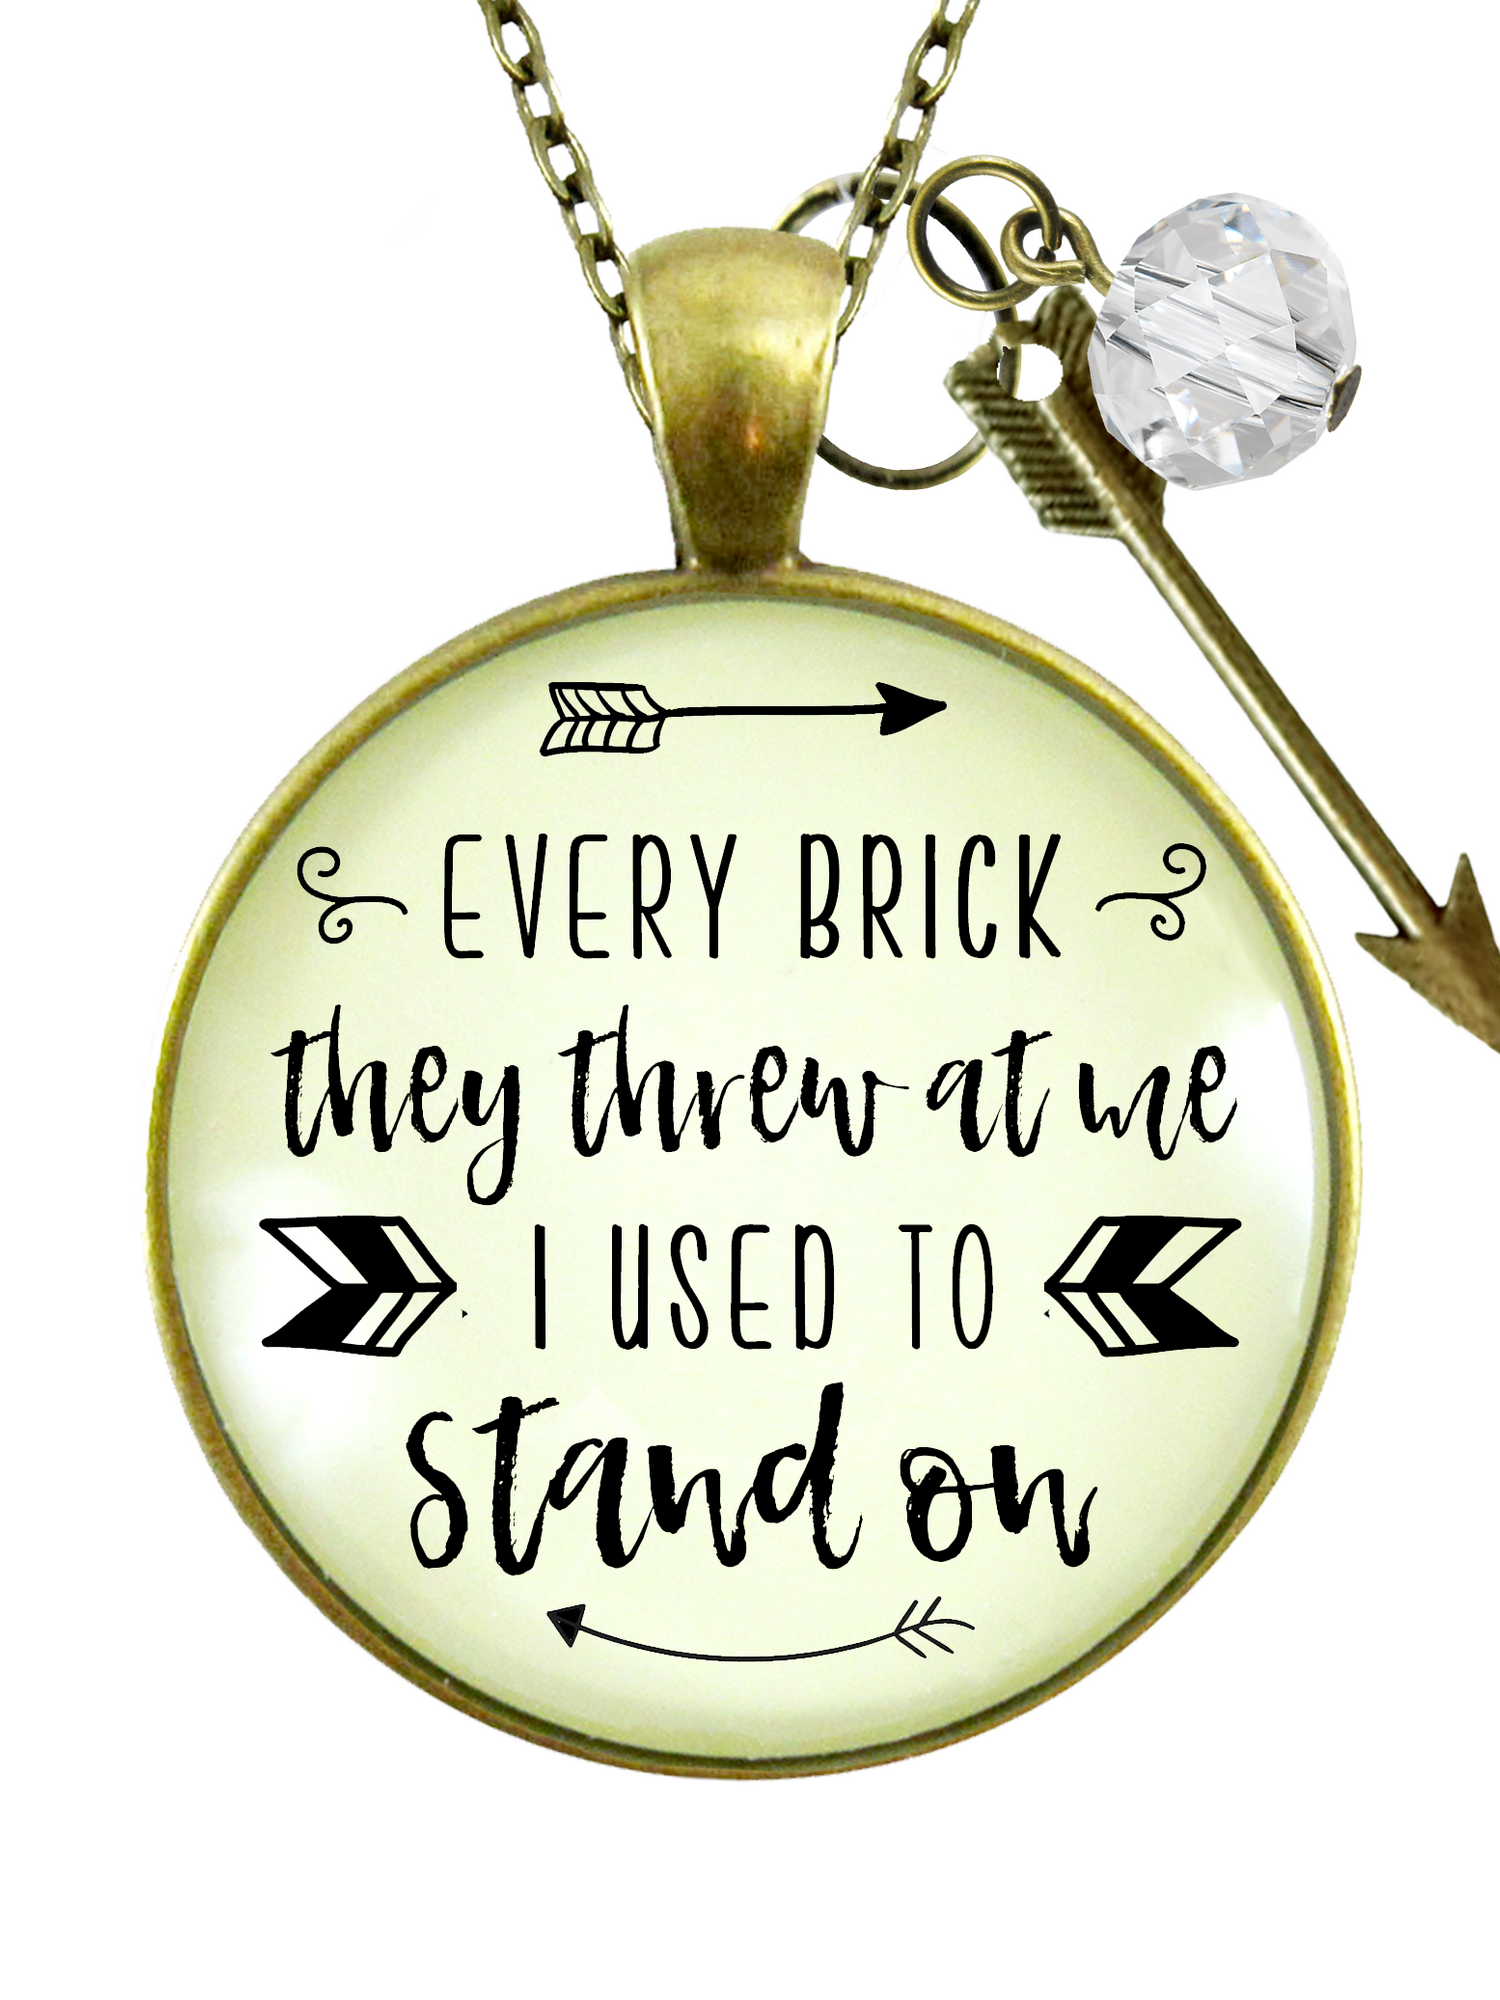 Gutsy Goodness Every Brick They Threw At Me Necklace Survivor Mantra Arrow Jewelry 24 Walmart Com Walmart Com 2020 popular 1 trends in jewelry & accessories, home & garden, lights & lighting, watches with arrow pendant chain and 1. walmart